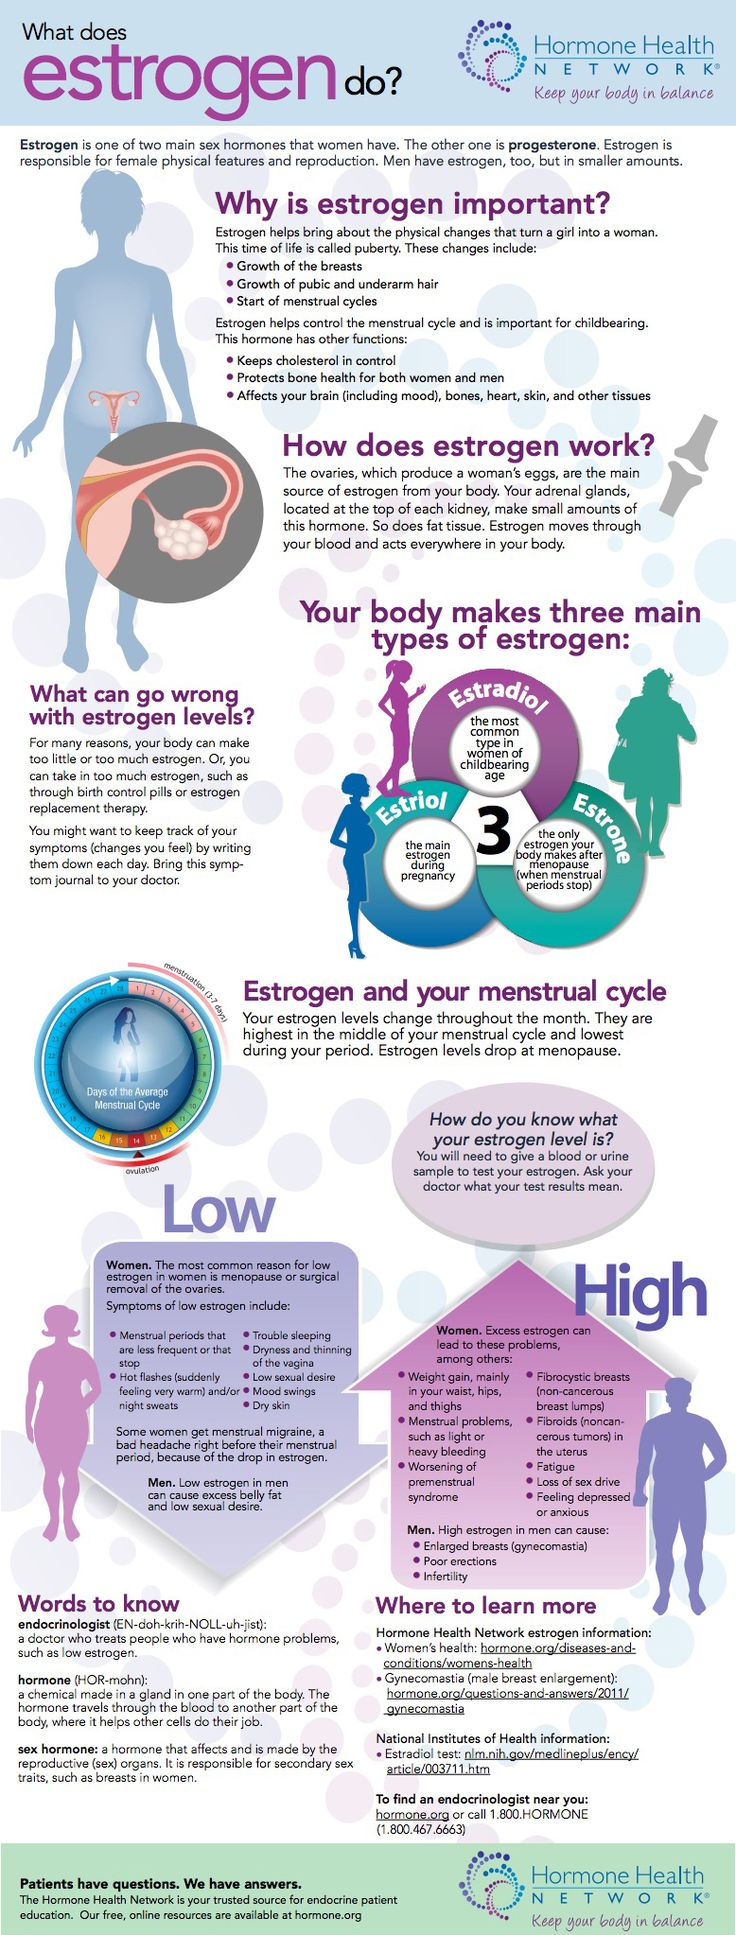 Premarin cream uk.doc - Estrogen Infographic